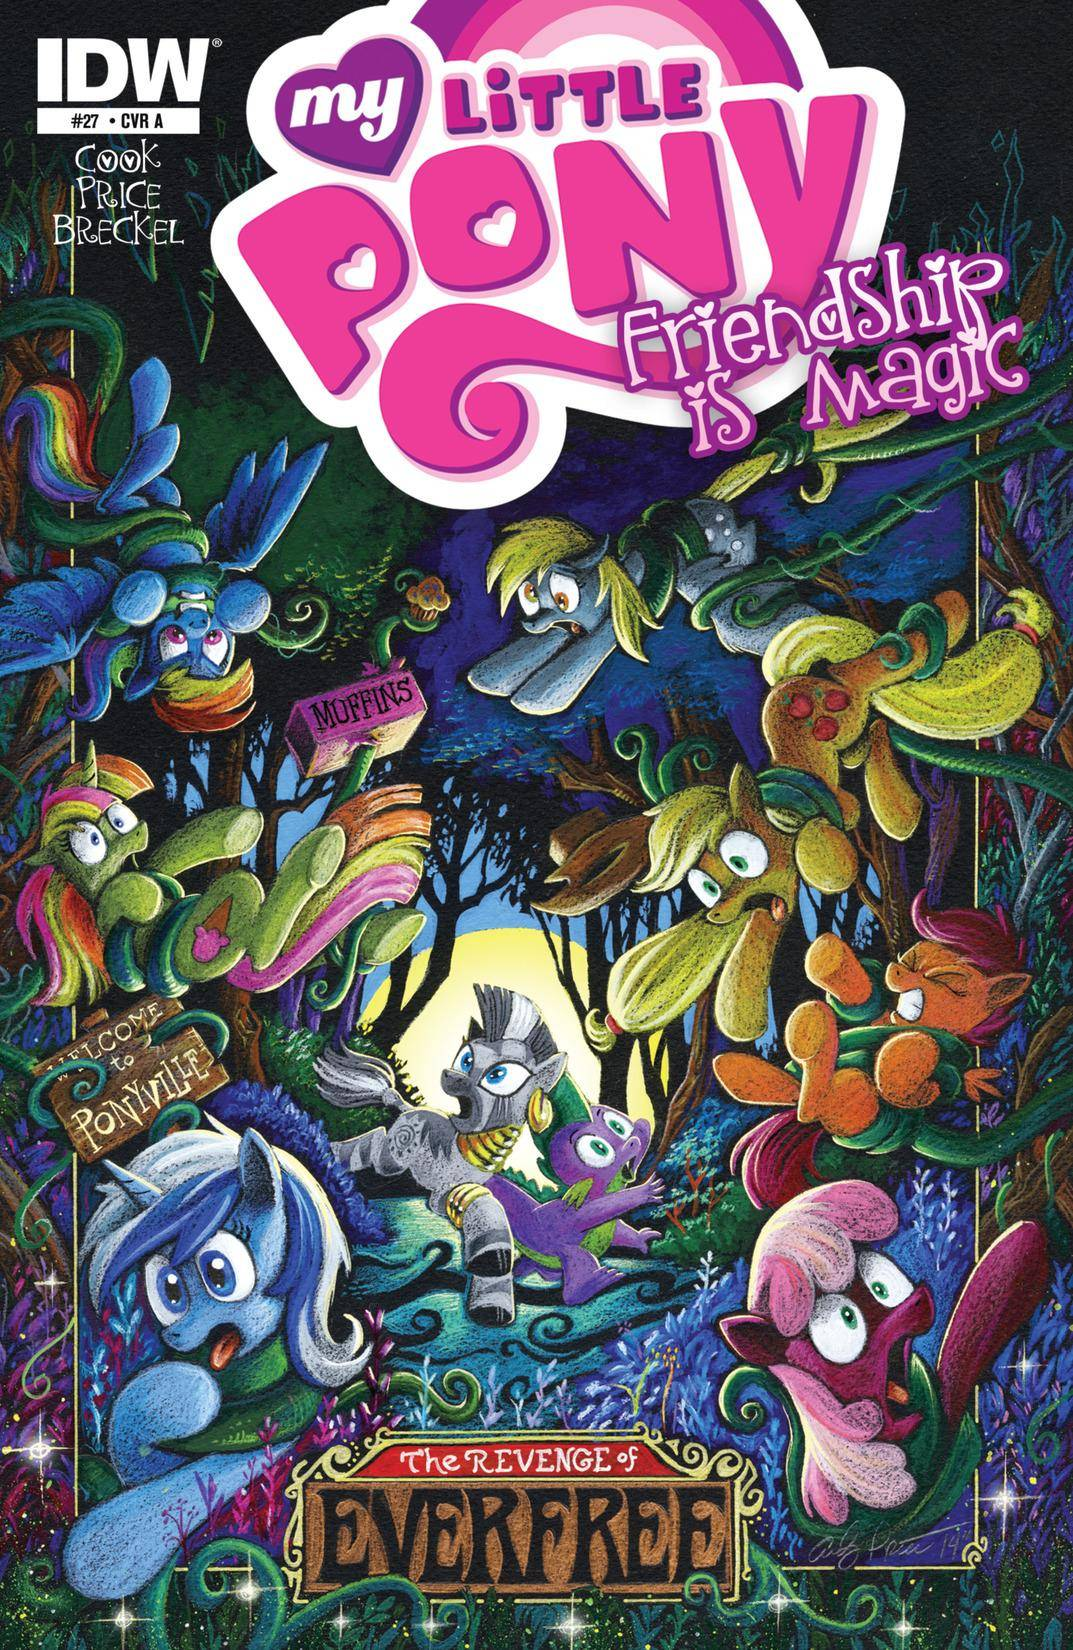 My Little Pony - Friendship Is Magic 027 2015 2 covers digital-SD